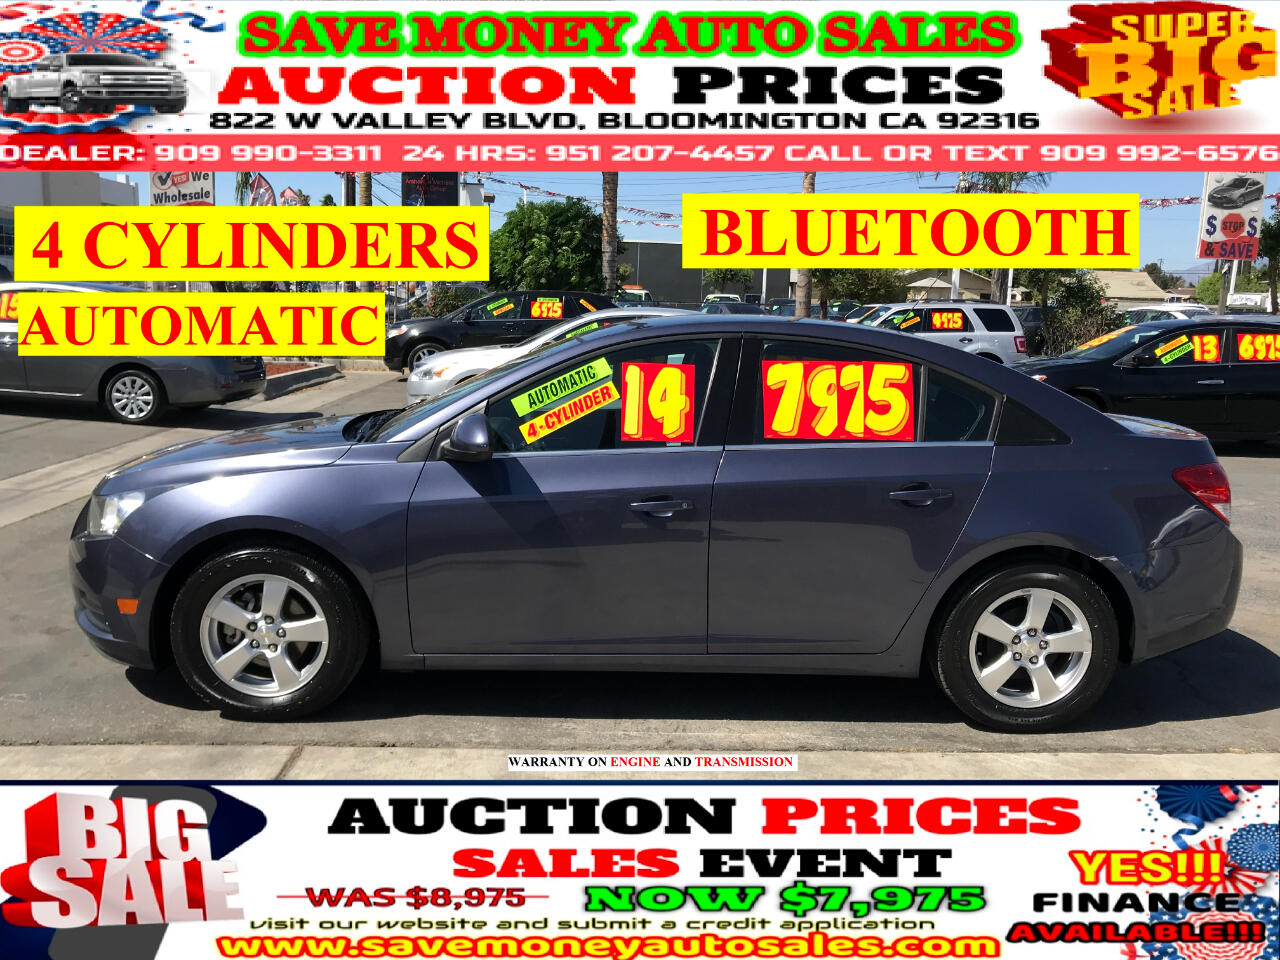 2014 Chevrolet Cruze ECO>4CYLDS>AUTO>LOW MILES>>GREAT BUY!!!!